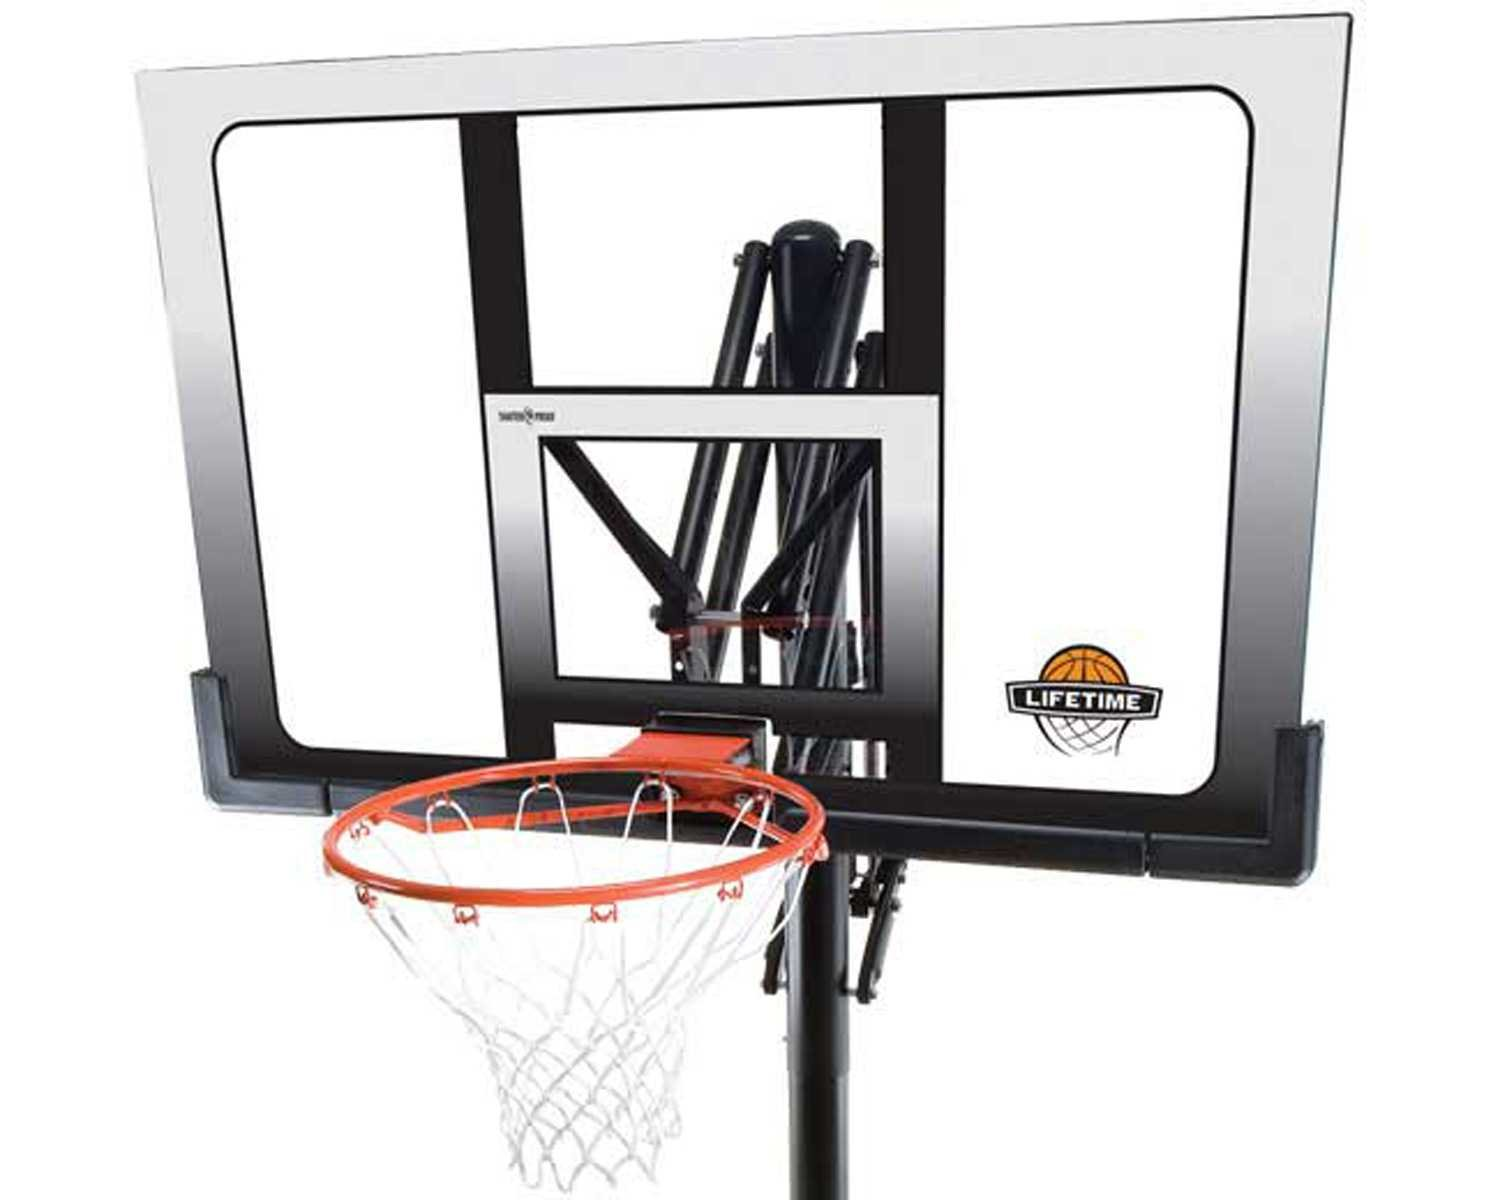 Amazon.com : Lifetime 71281 In Ground Power Lift Basketball System, 52 Inch  Shatterproof Backboard : Portable Basketball Backboards : Sports U0026 Outdoors